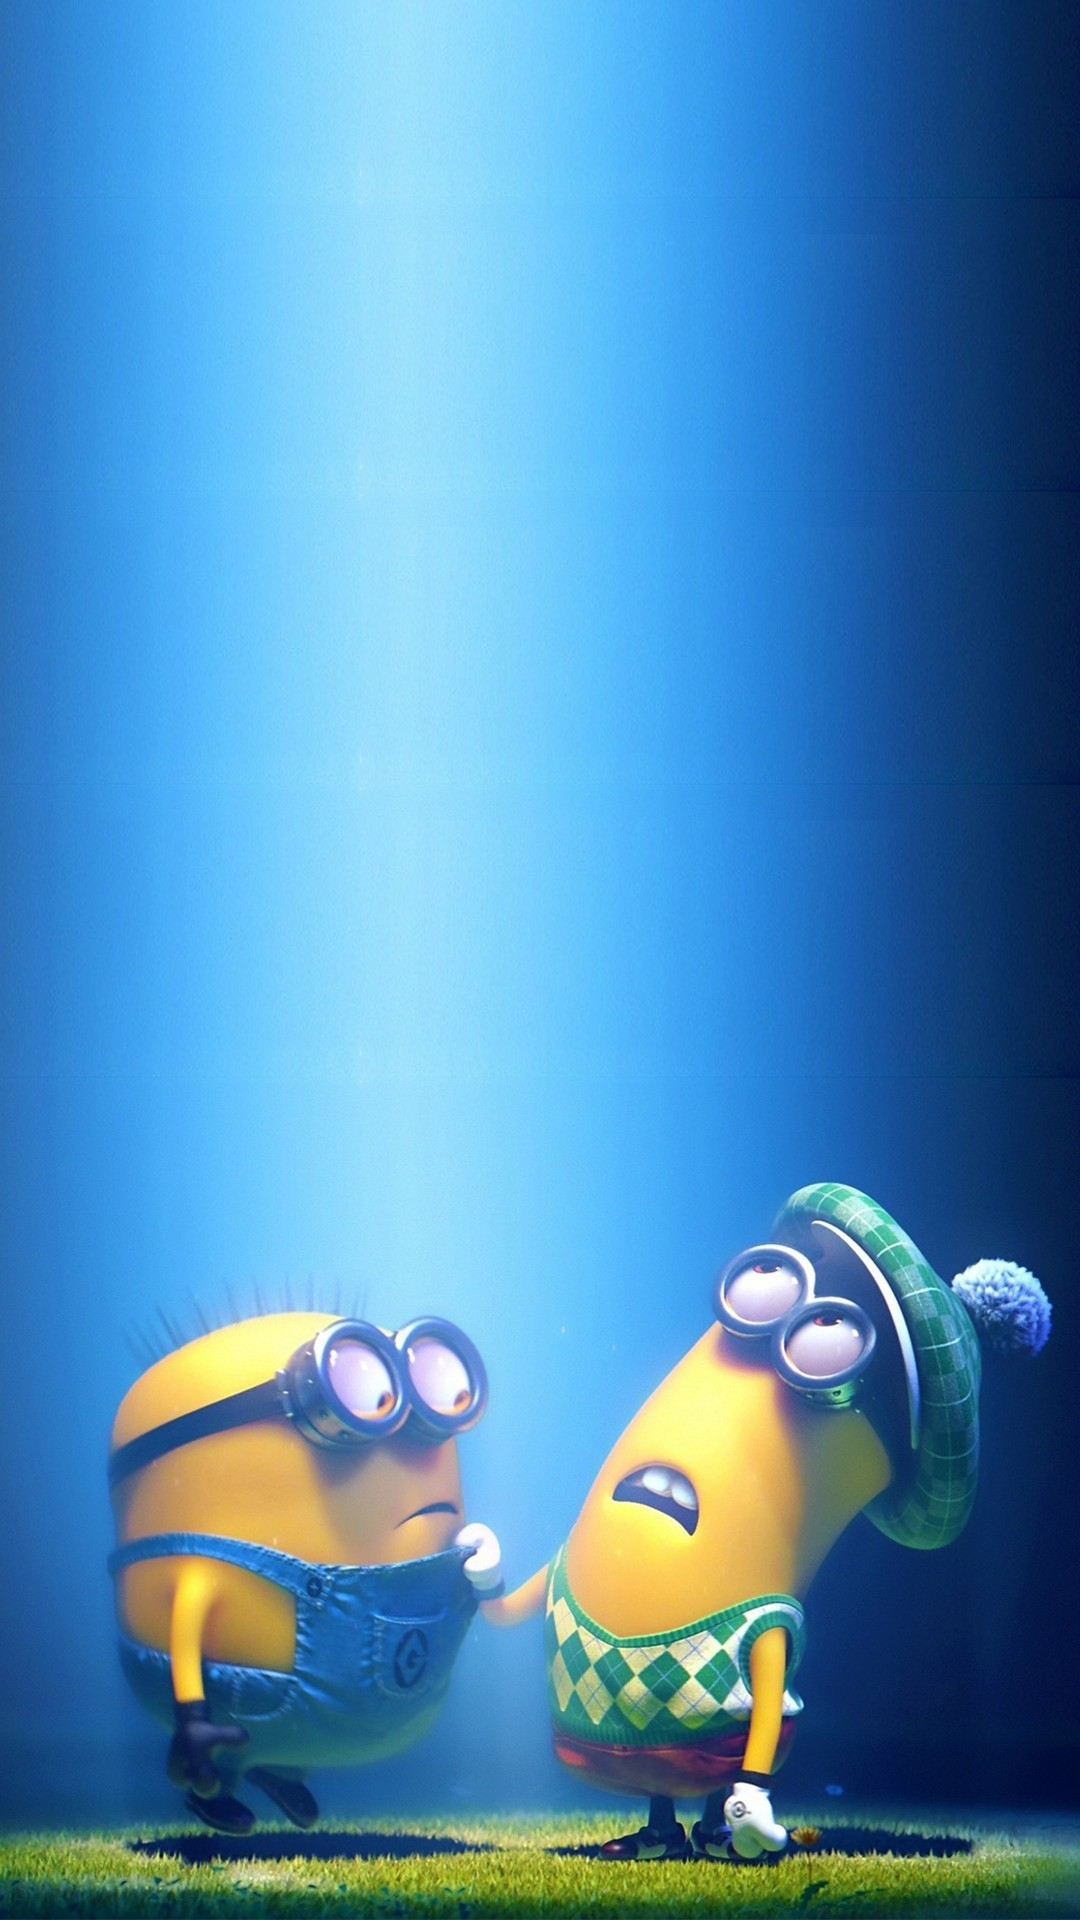 2014 Halloween minions iphone 6 plus wallpaper – blue sky, Despicable Me # iphone #